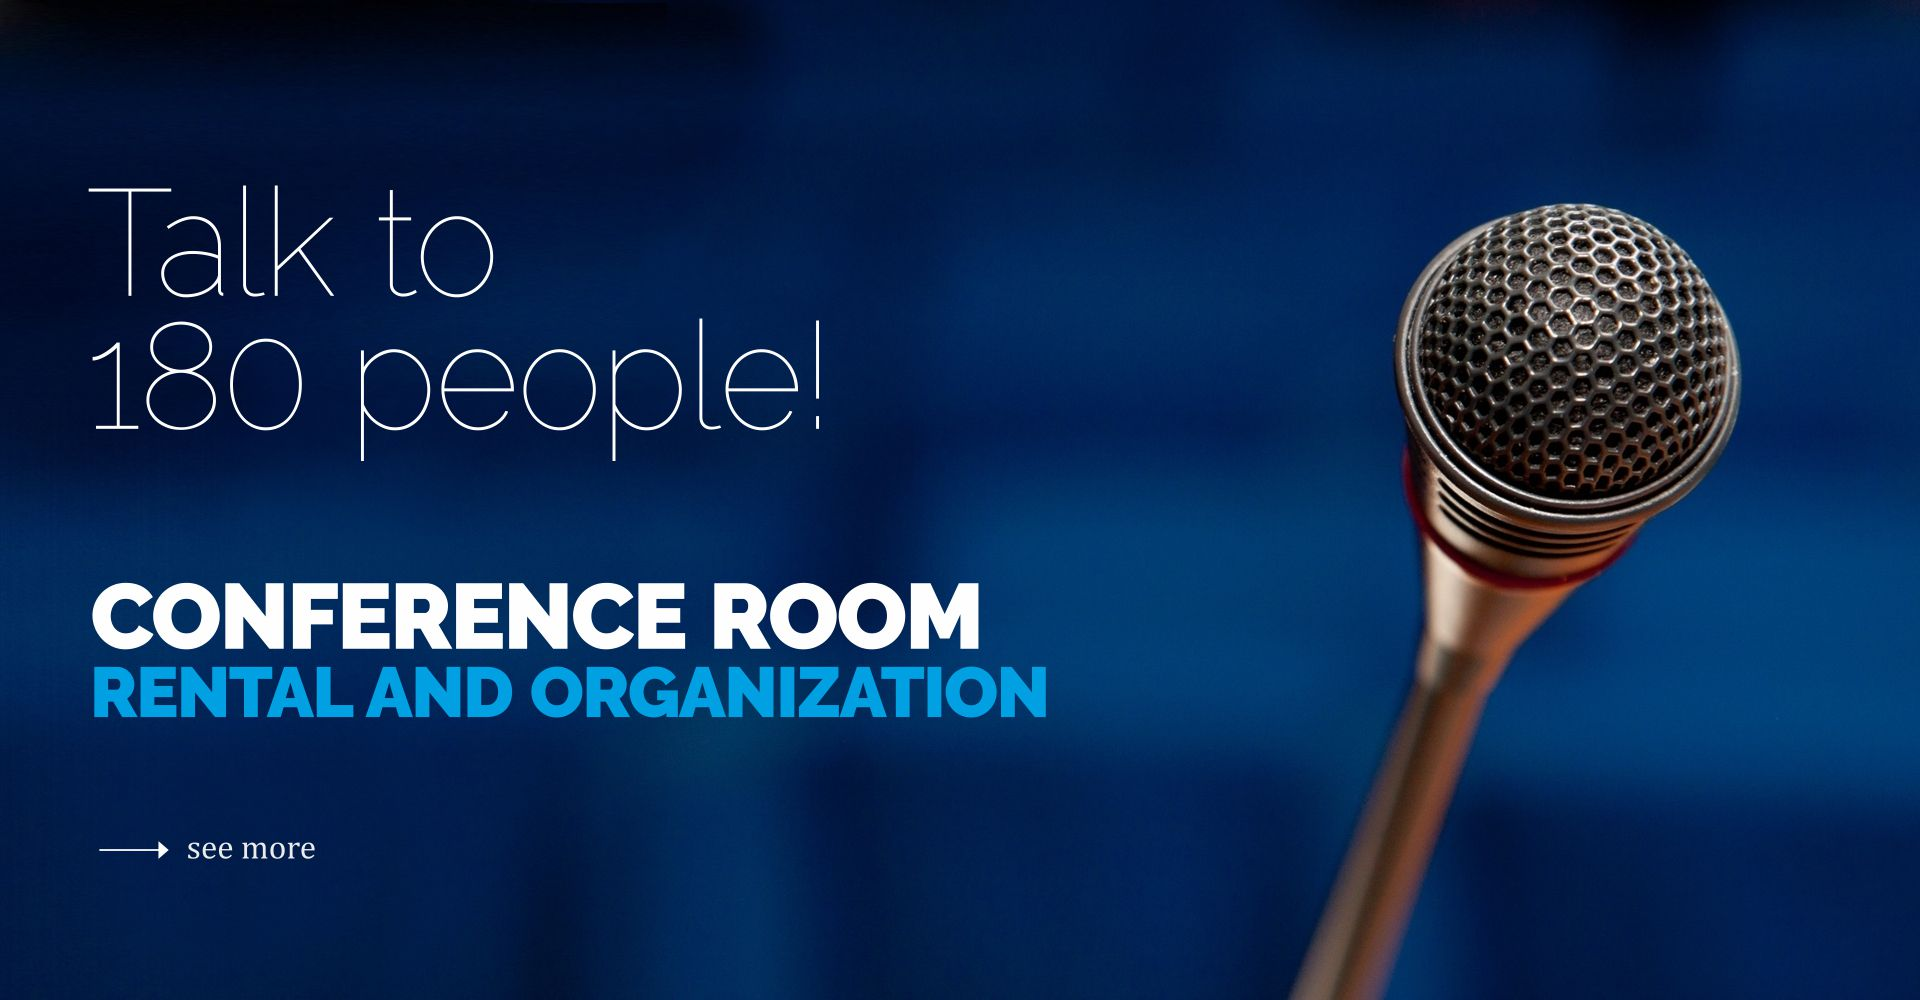 Rent the conference room